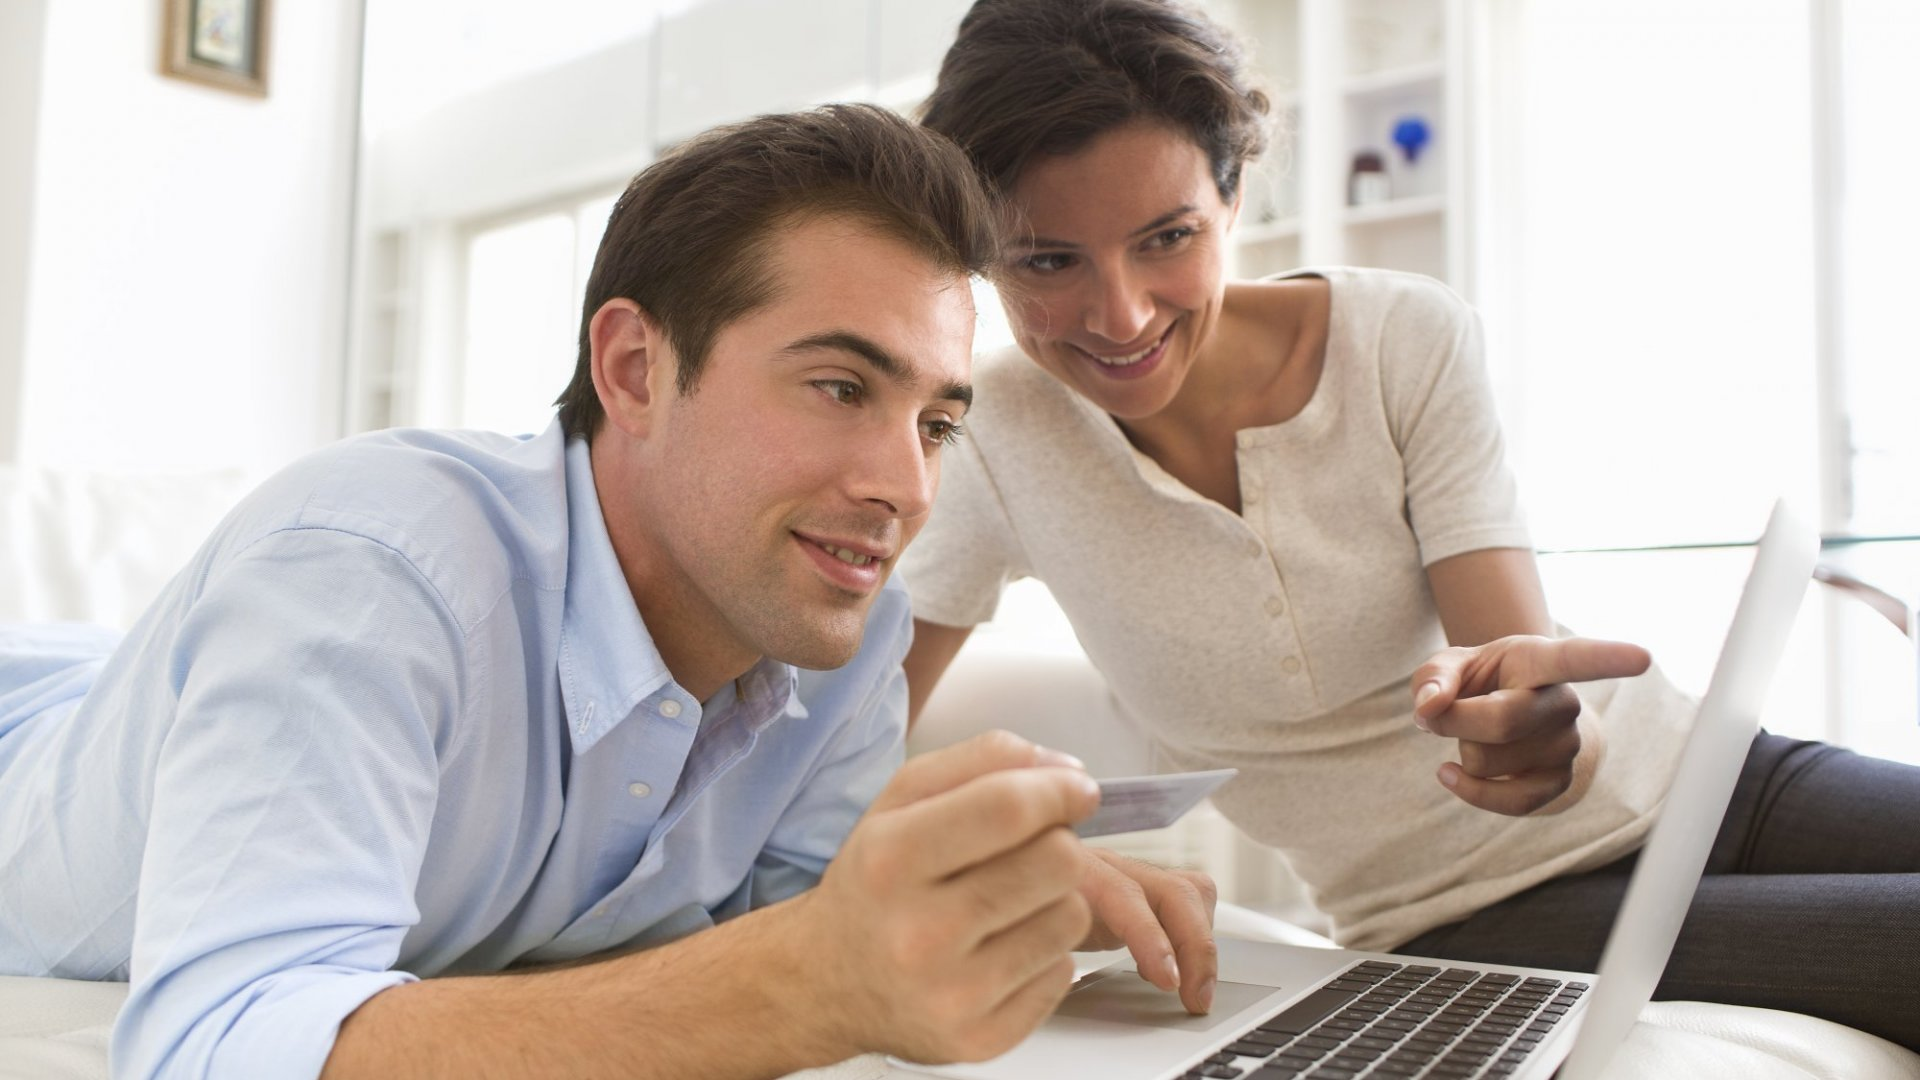 How To Successfully Run A Business With Your Spouse